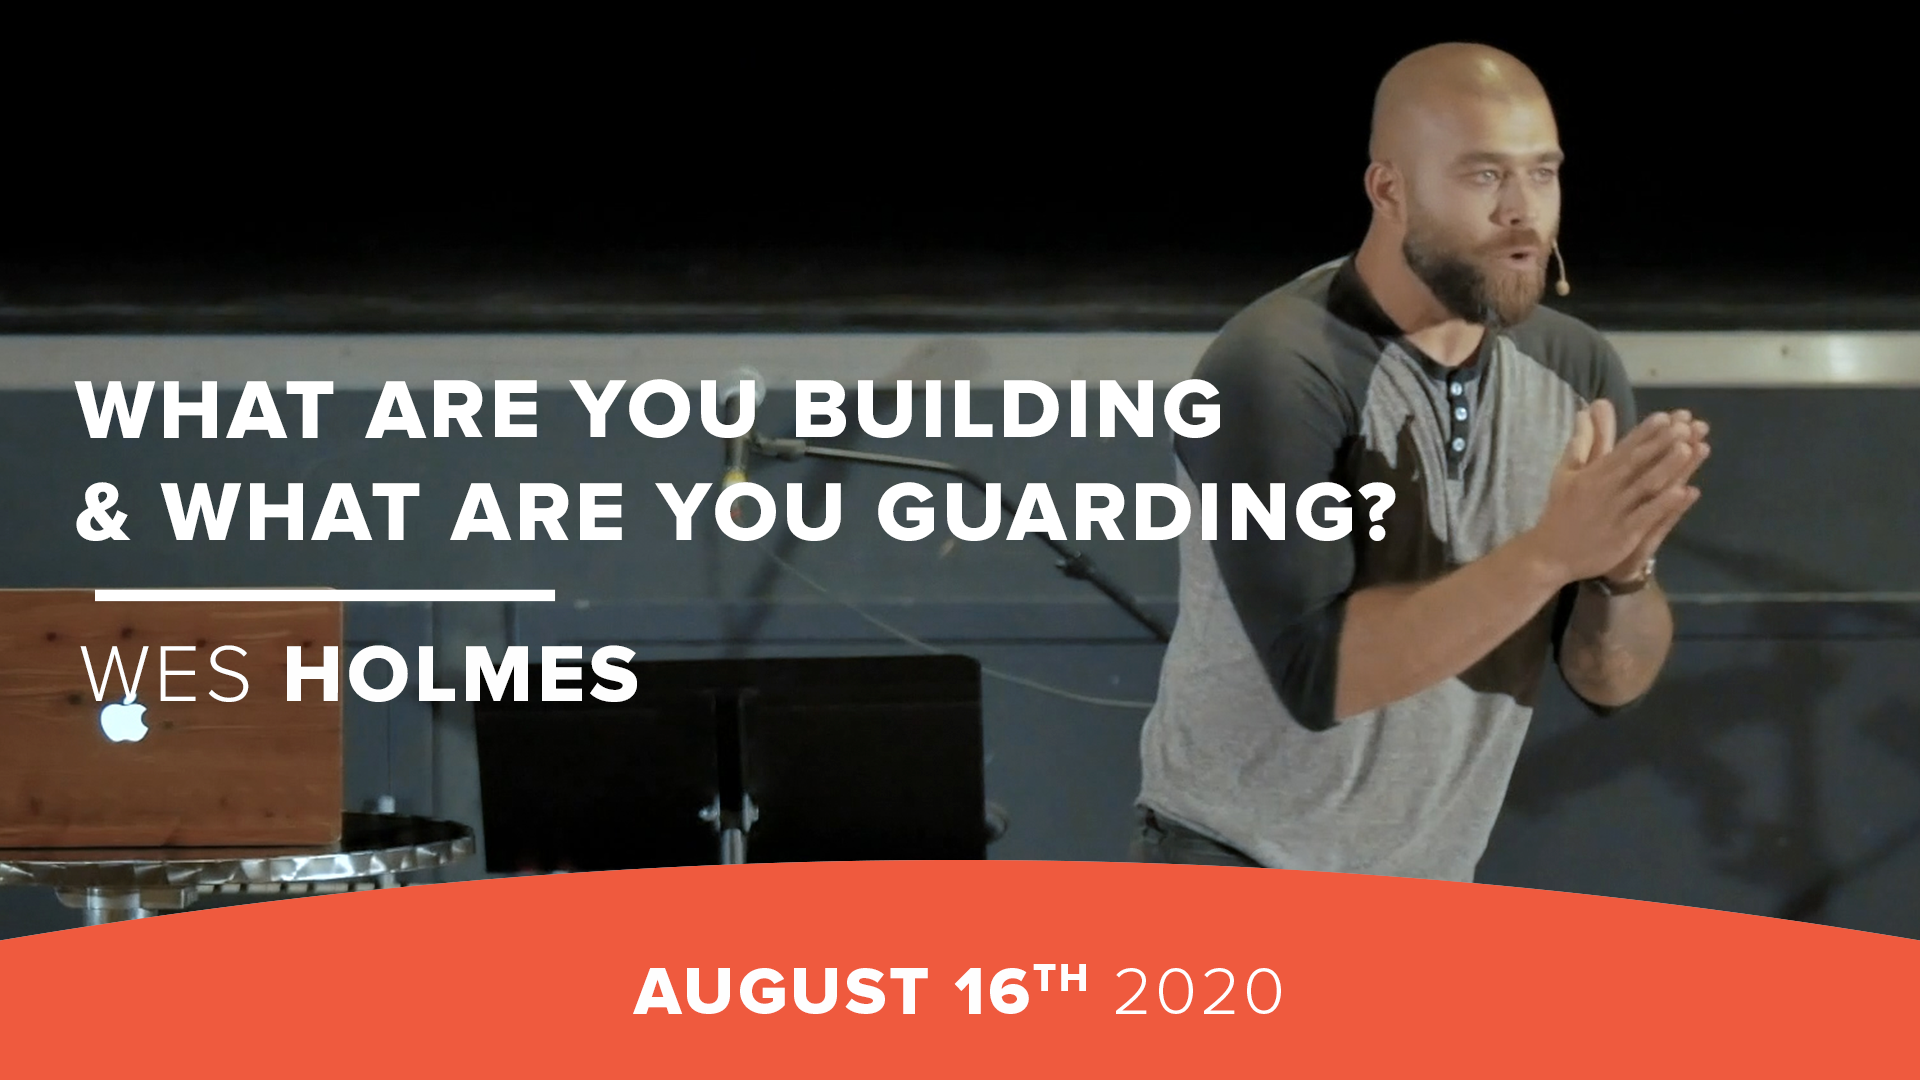 What are you Building & what are you Guarding?